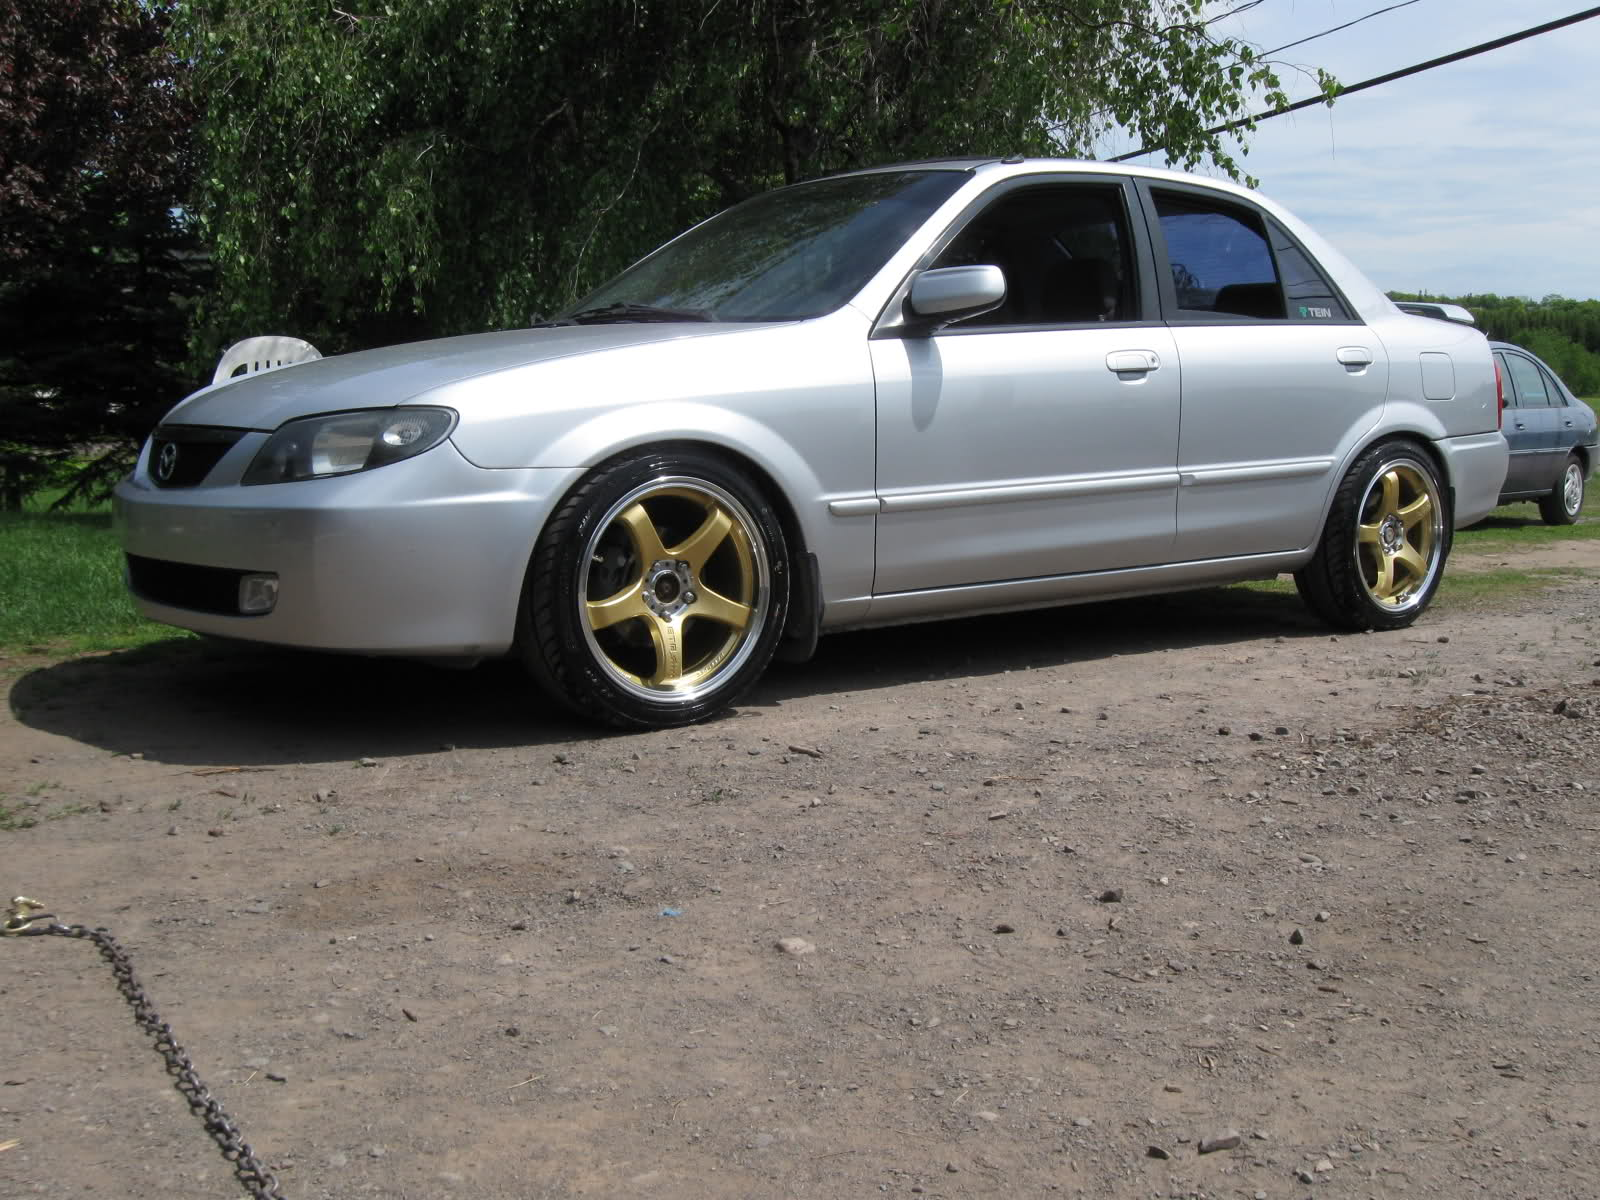 Yellow Mazda Protege 2007